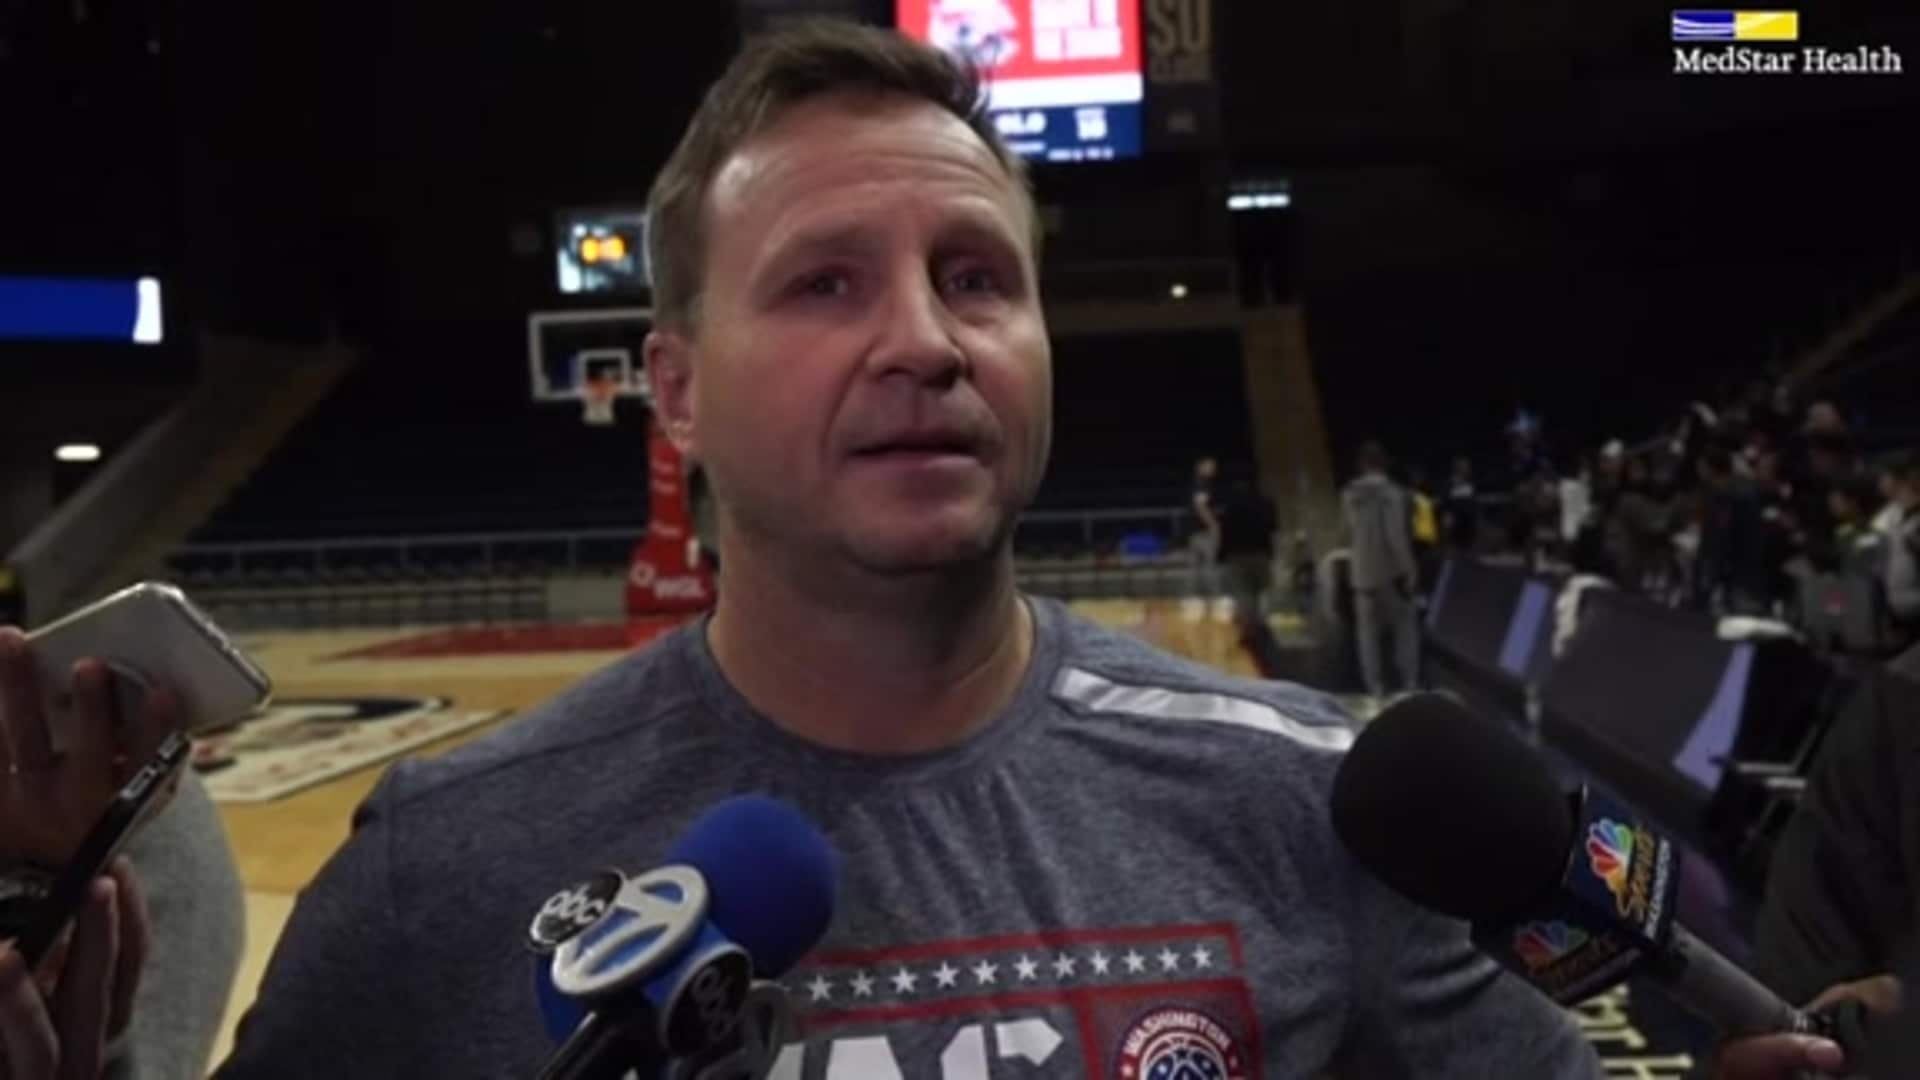 Scott Brooks Post-Practice - 11/11/19